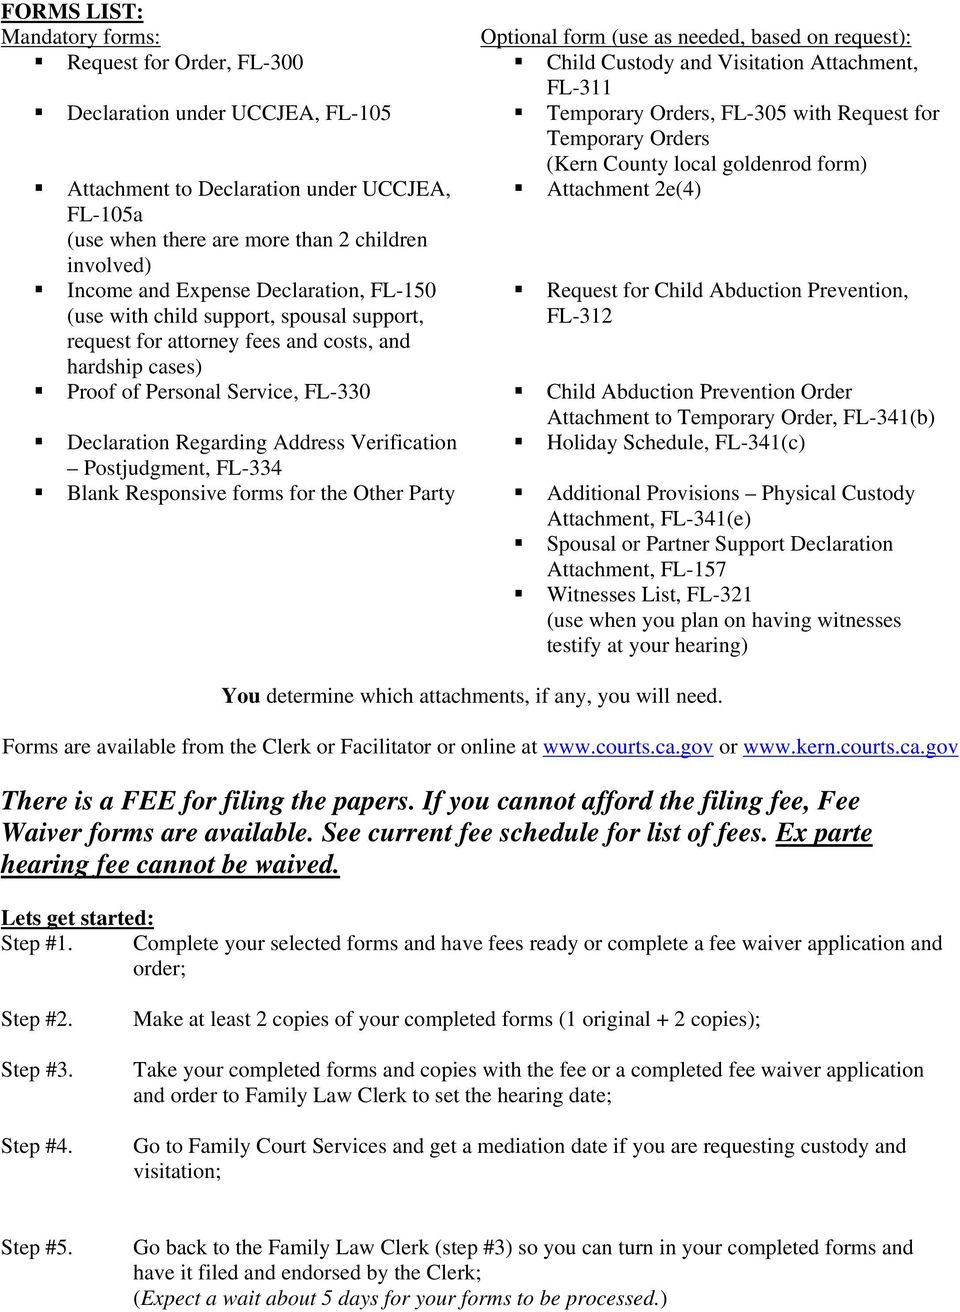 Request For Order (Sample Packet) – Pdf Free Download With Regard To Kern County Family Court Calendar